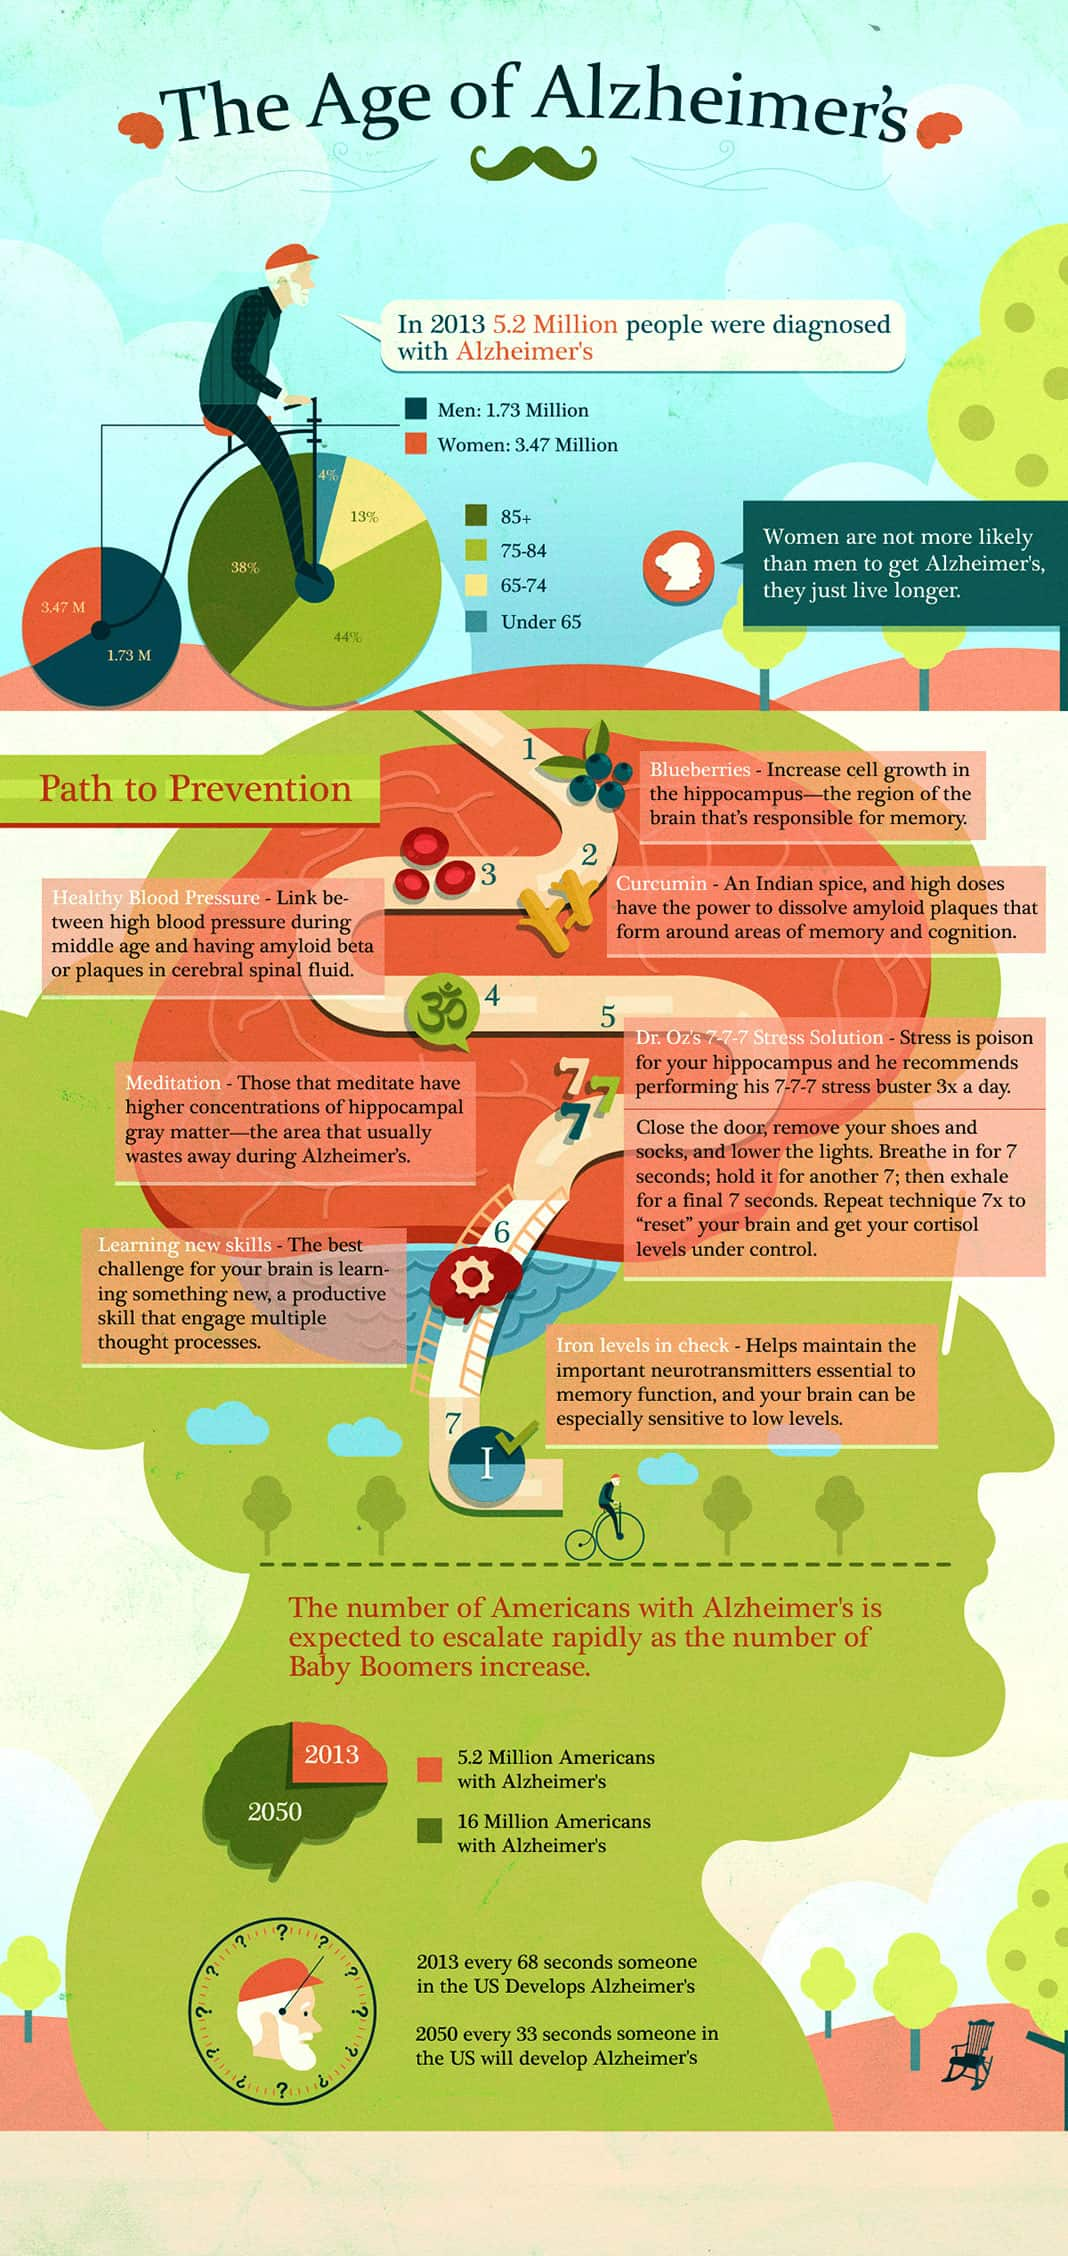 The Age of Alzheimers Graphic